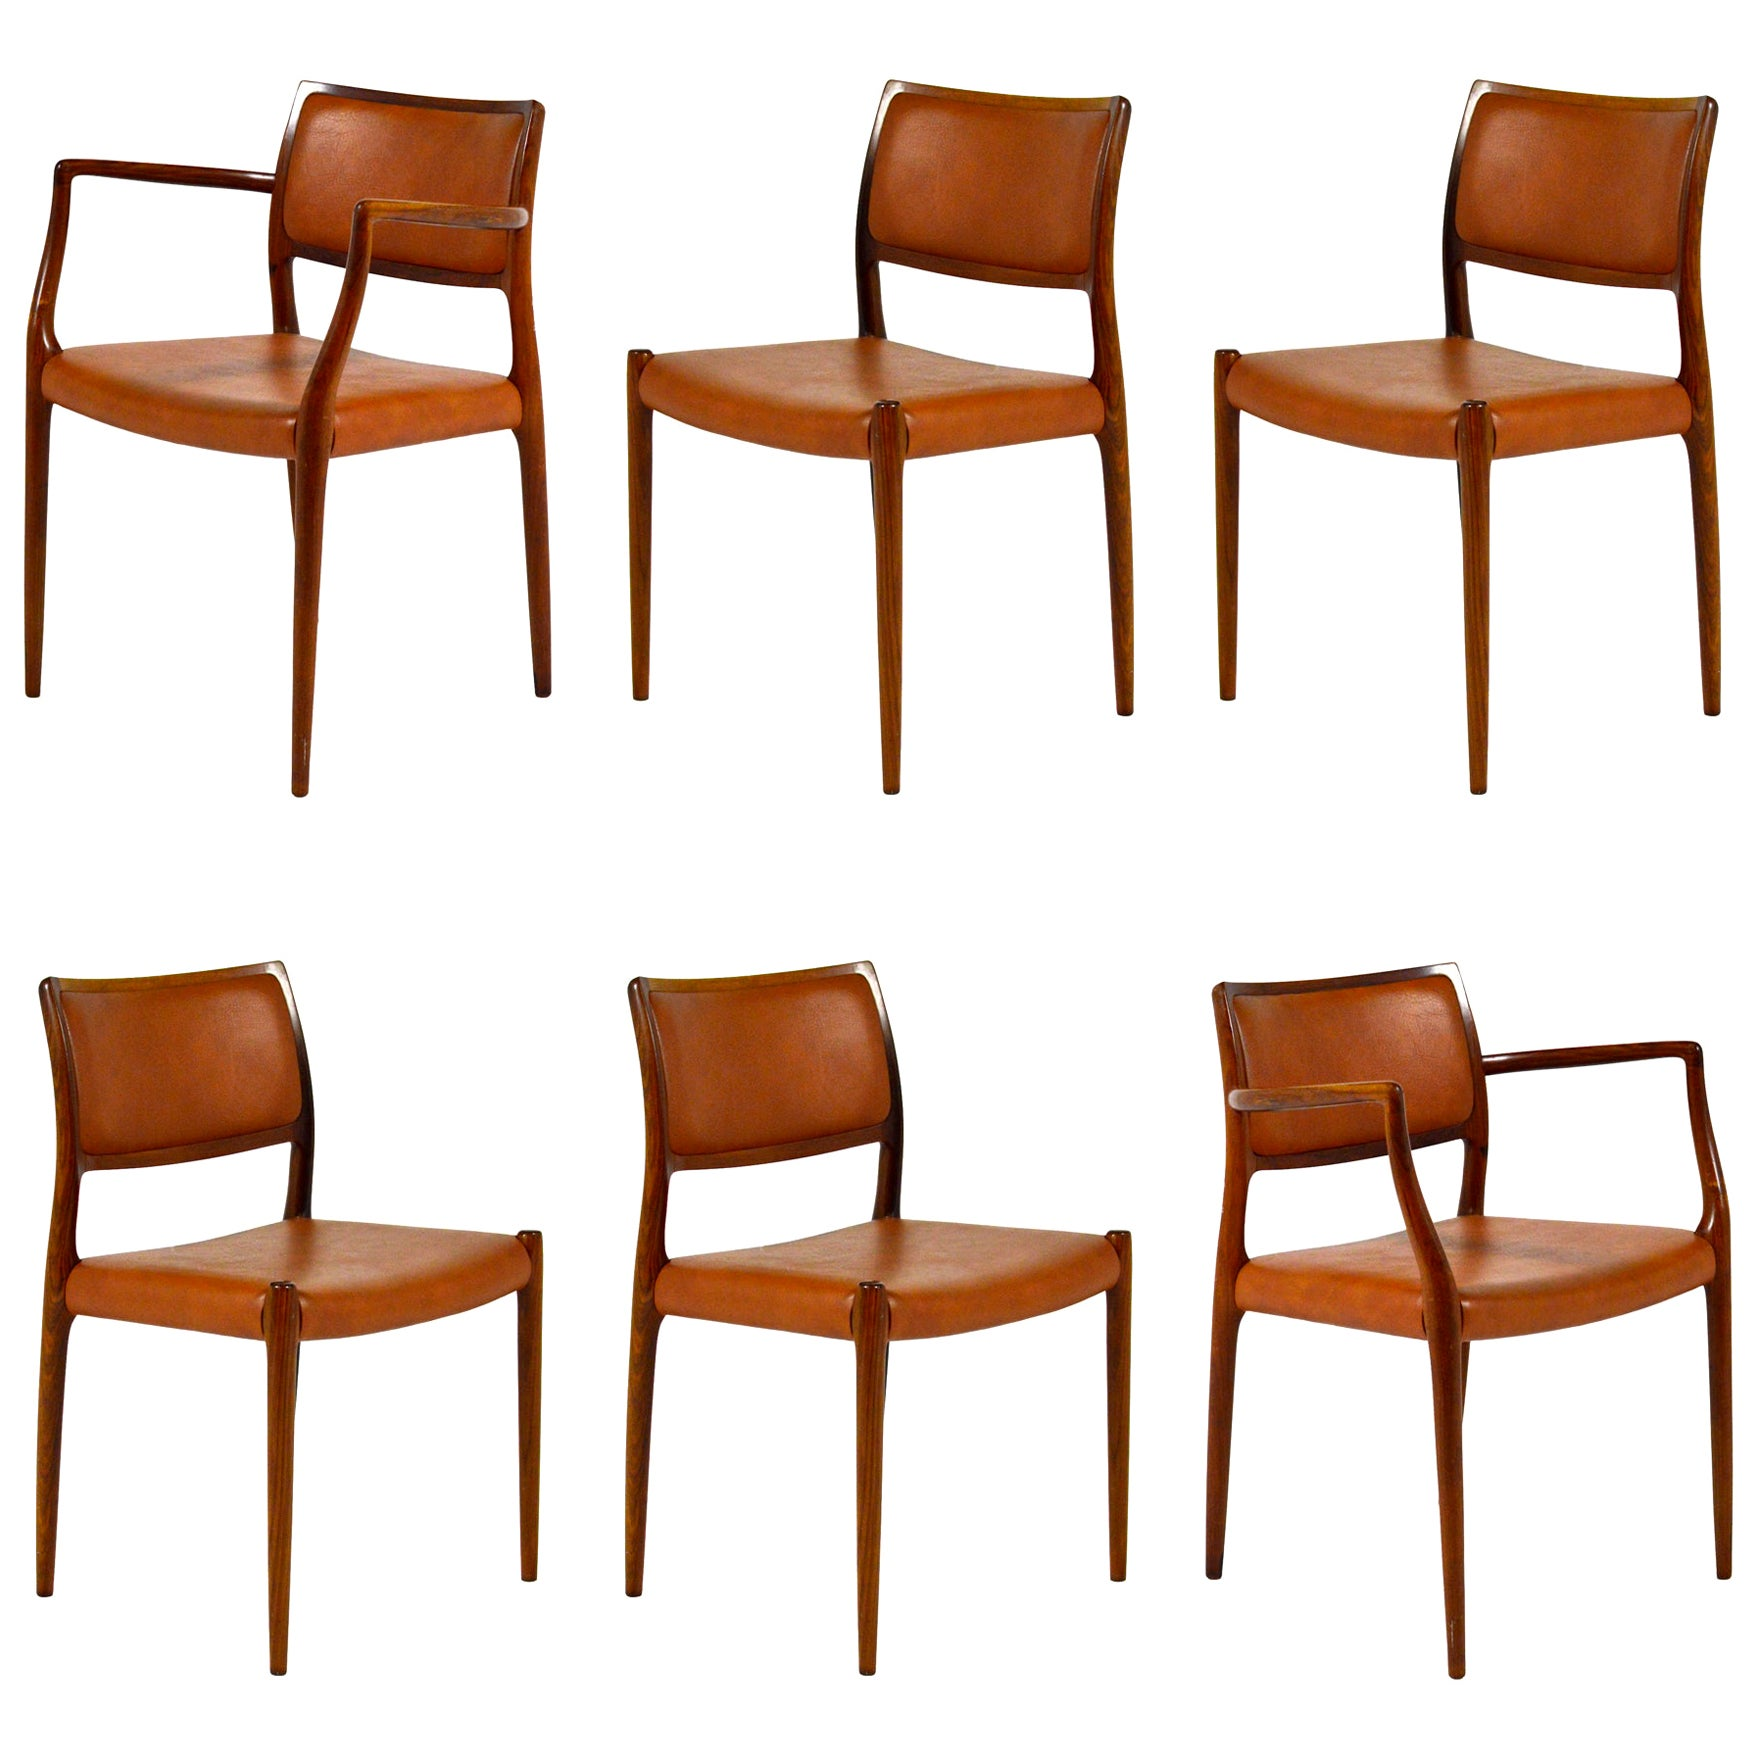 N.O. Møller Model 80 & 65 Rosewood Chairs Set of Six